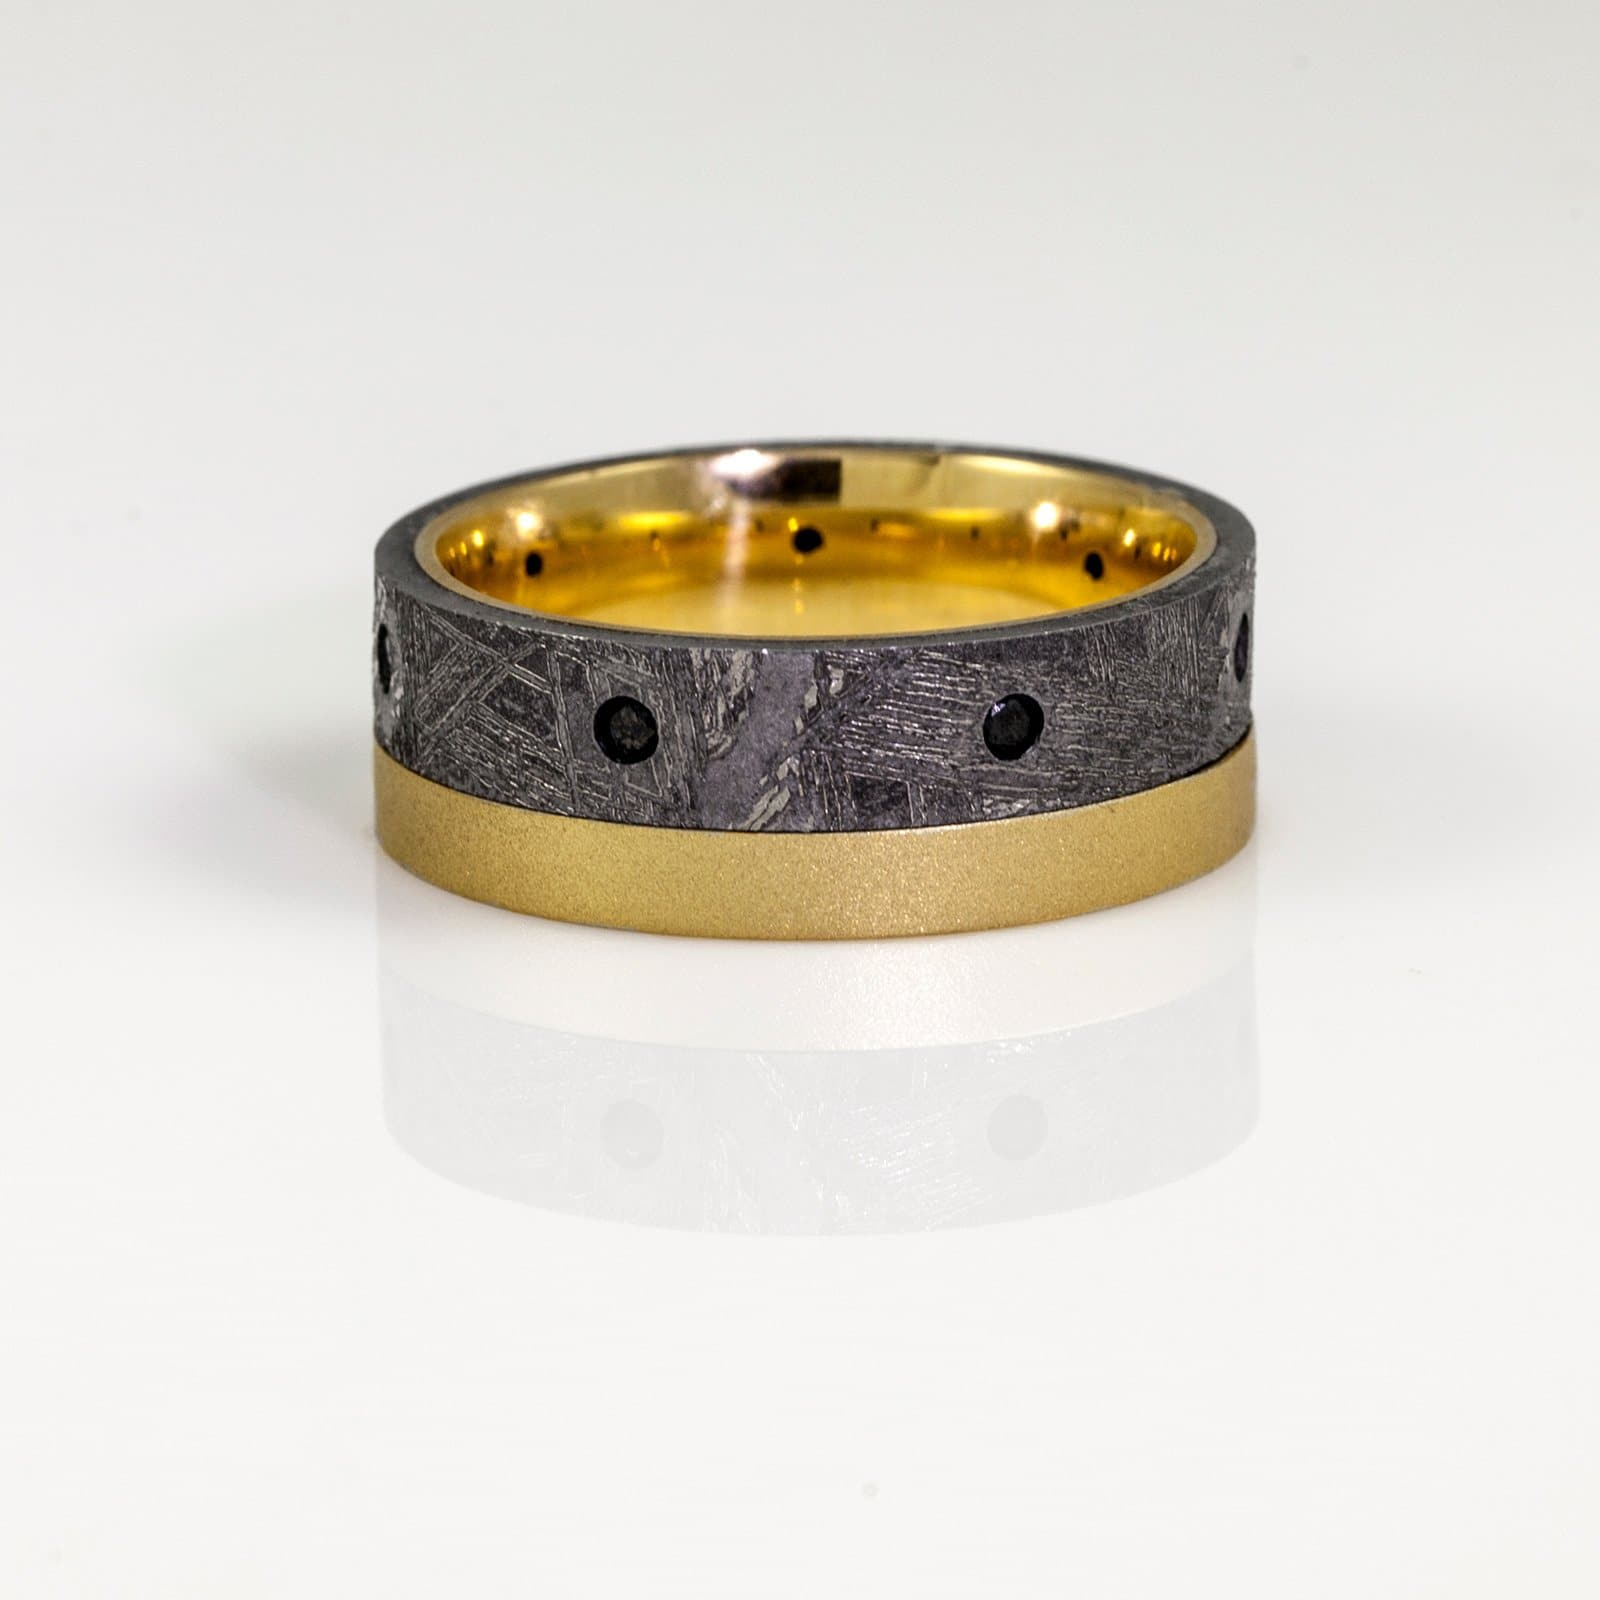 18K Yellow Gold Beadblast Meteorite and Flush Set Black Diamond Wedding Band